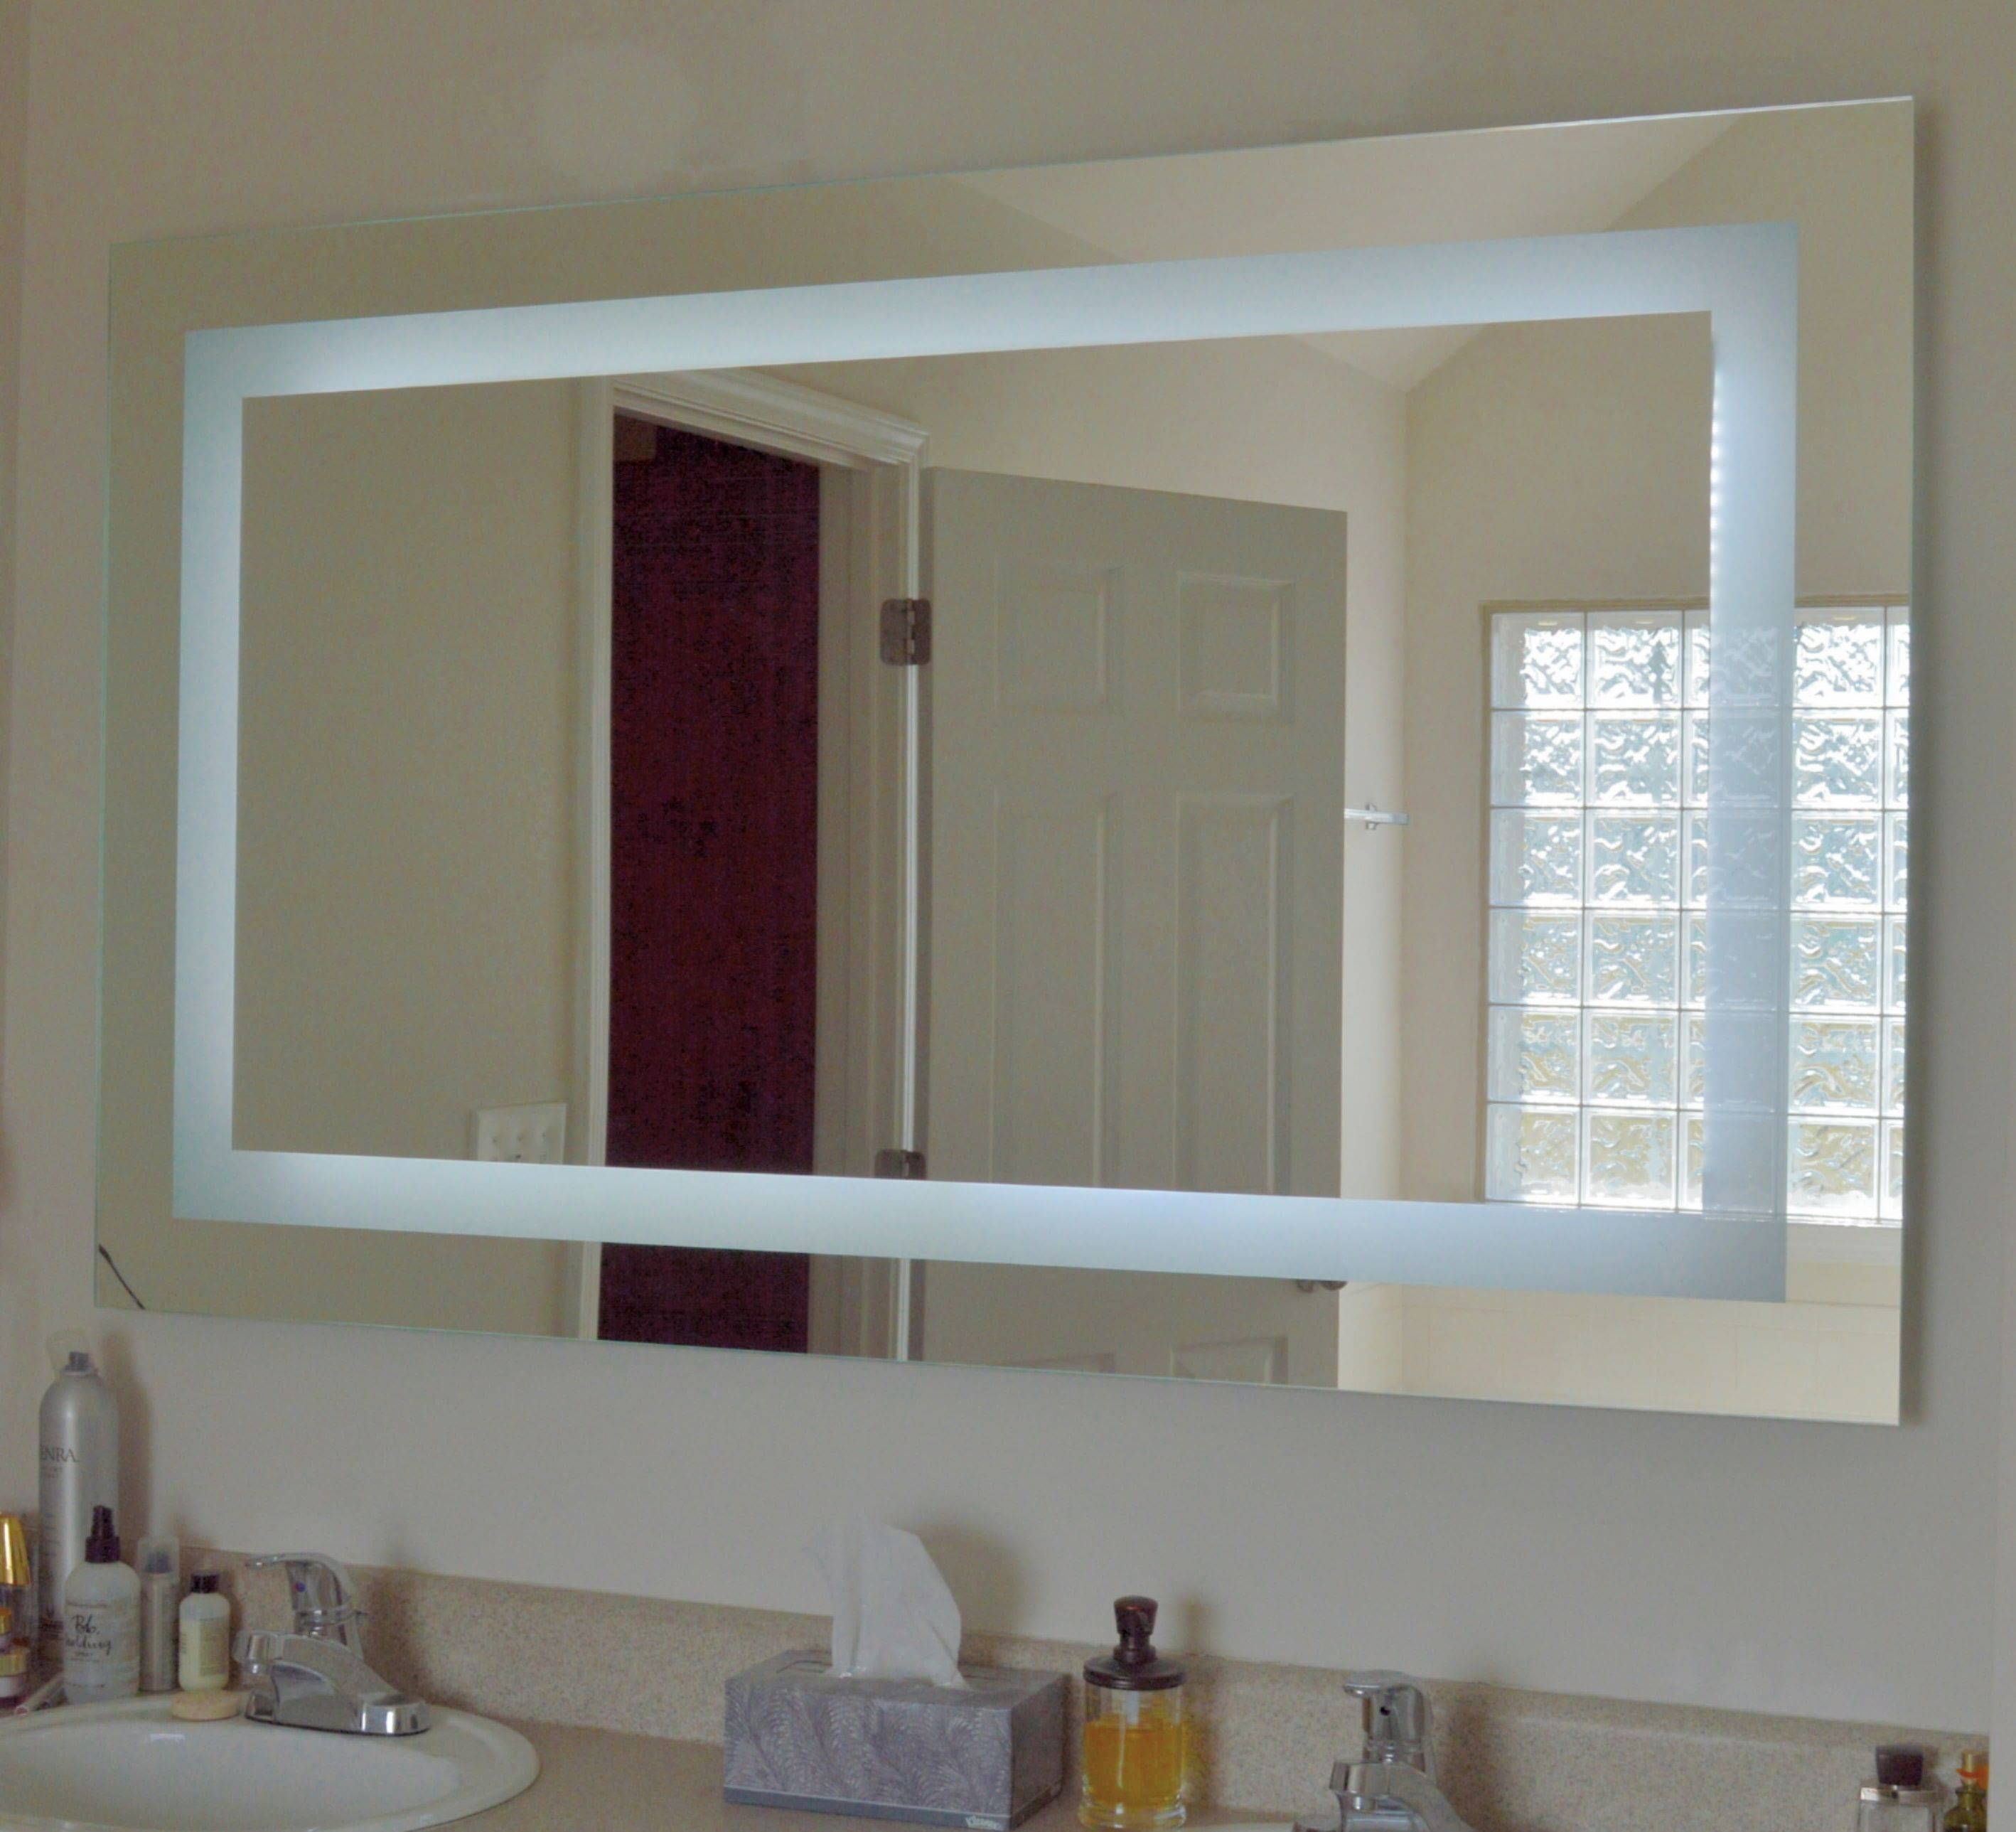 Our Mam86036 Front Lighted Led Mirror 60 Wide X 36 Tall Bathroom